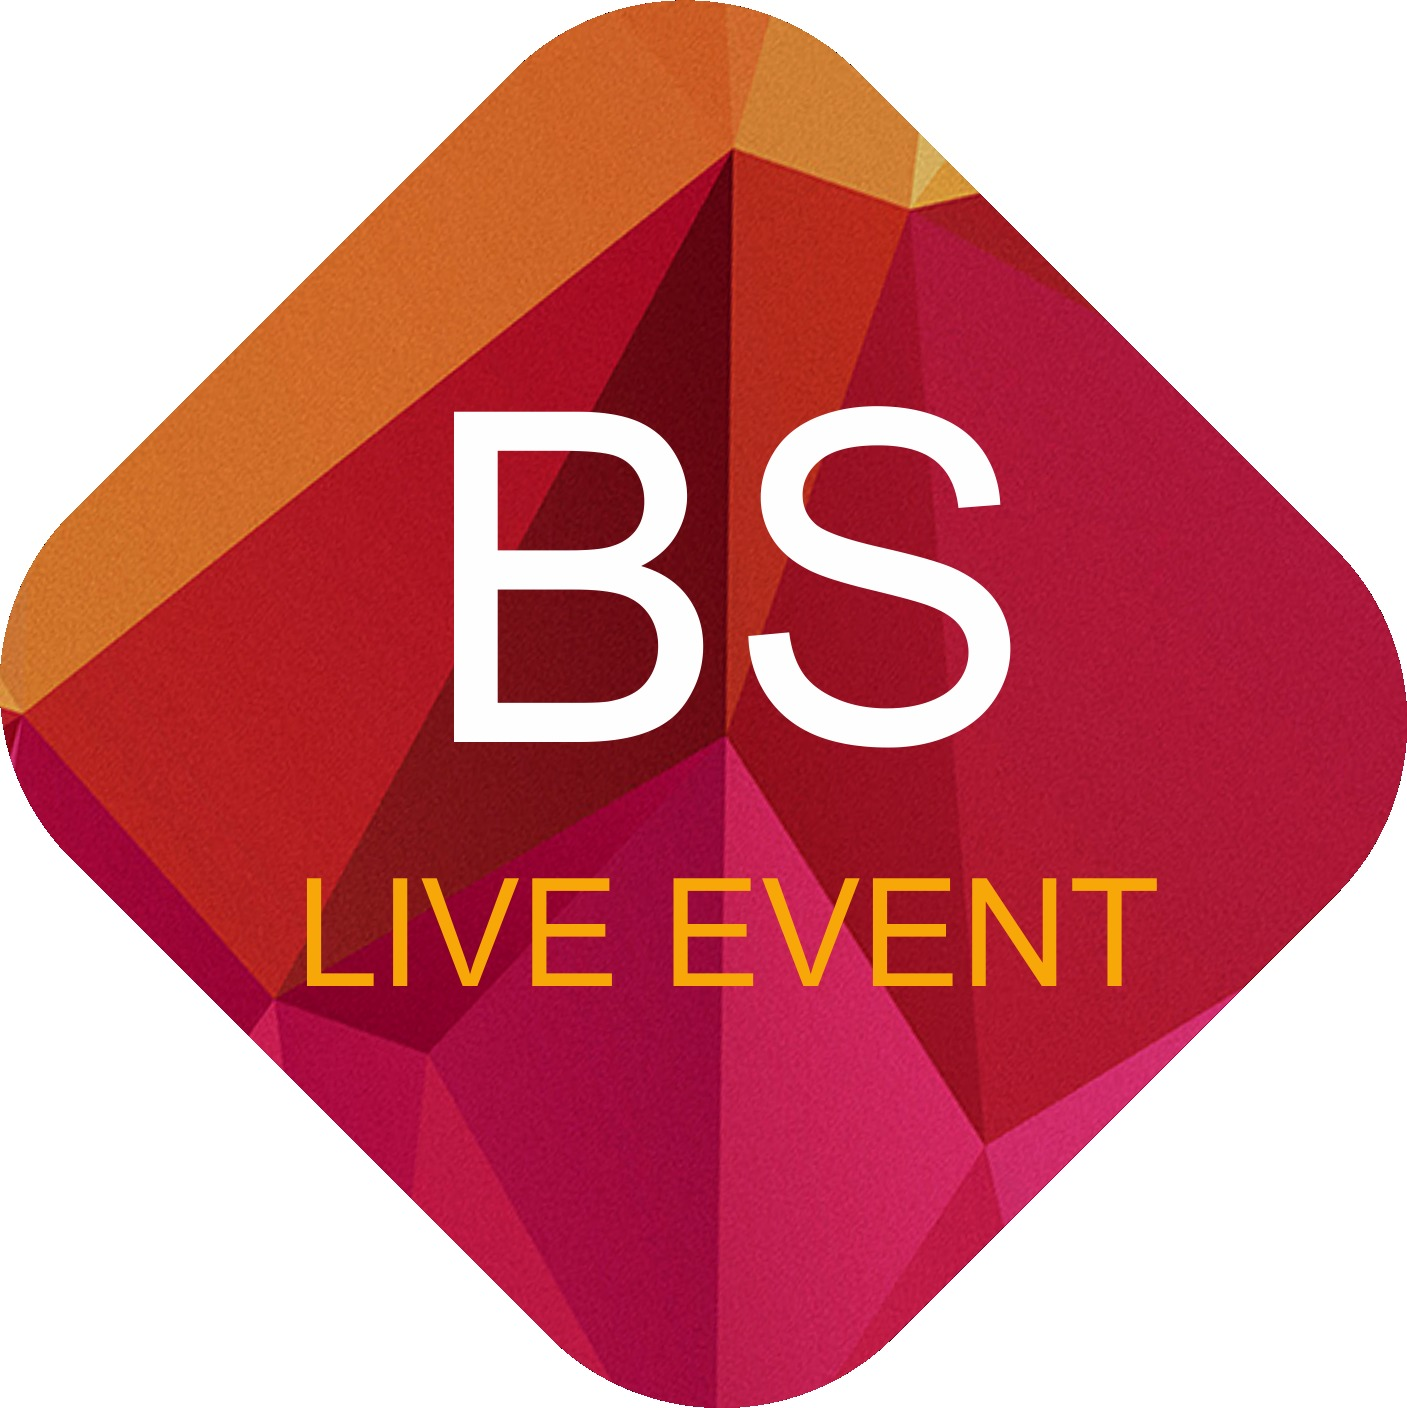 BS LIVE EVENT